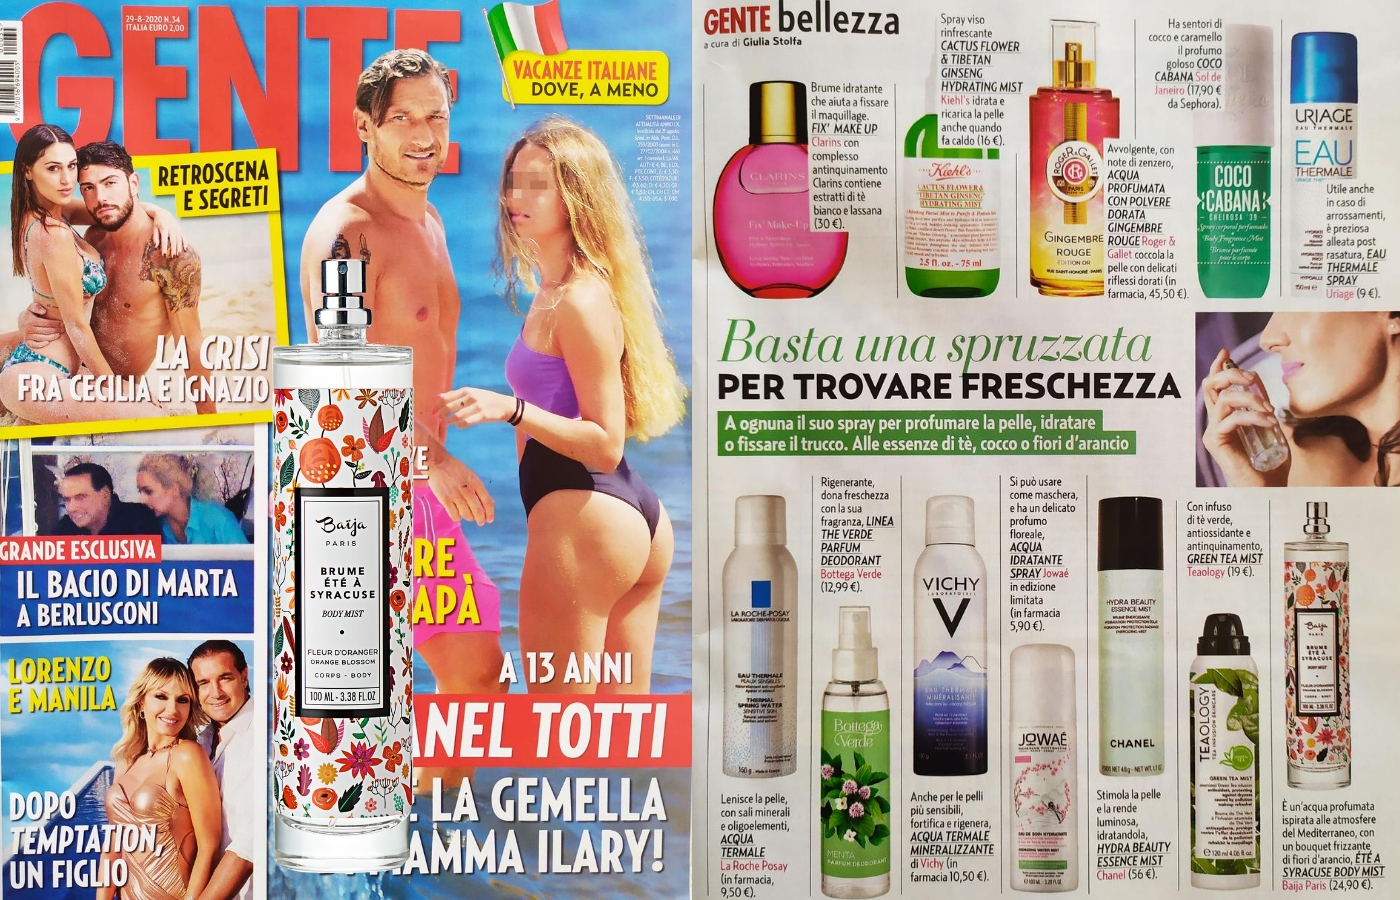 BODY MIST ETE A SYRACUSE